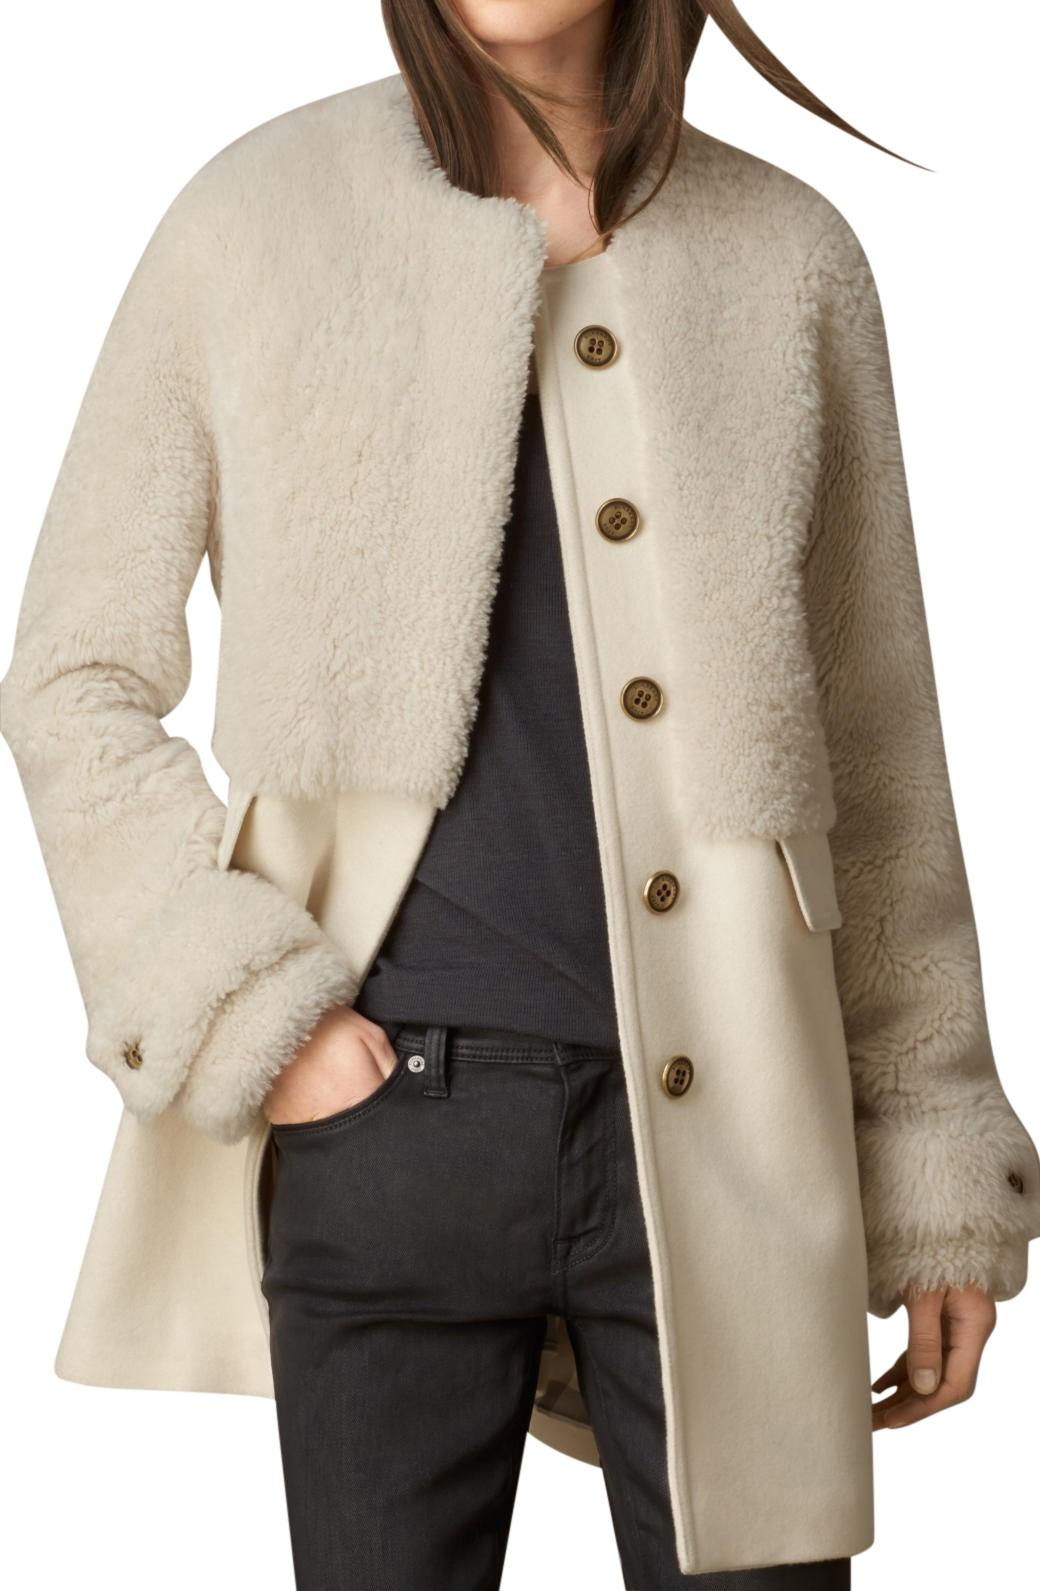 acbefd9263bd5 Buy burberry fur coat  Free shipping for worldwide!OFF48% The ...